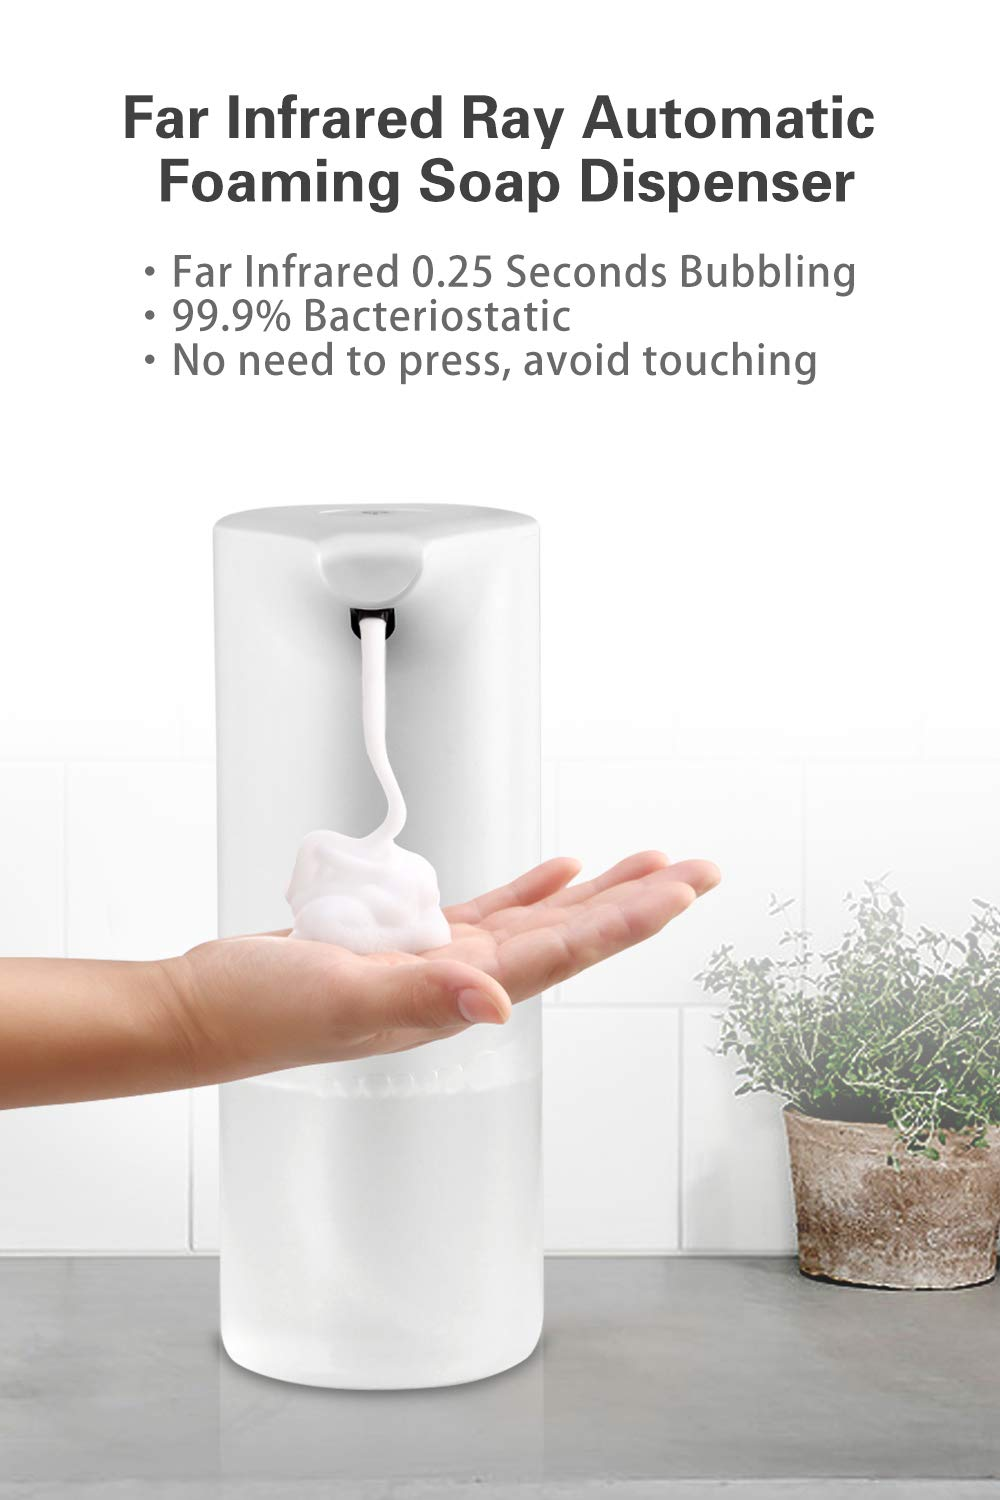 Hfb6d18db89344e129c6df921fb6ad23f1 - 350ml Bathroom Automatic Soap Dispenser USB Charging Infrared Induction Foam Kitchen Hand Sanitizer Touch Bathroom Accessories